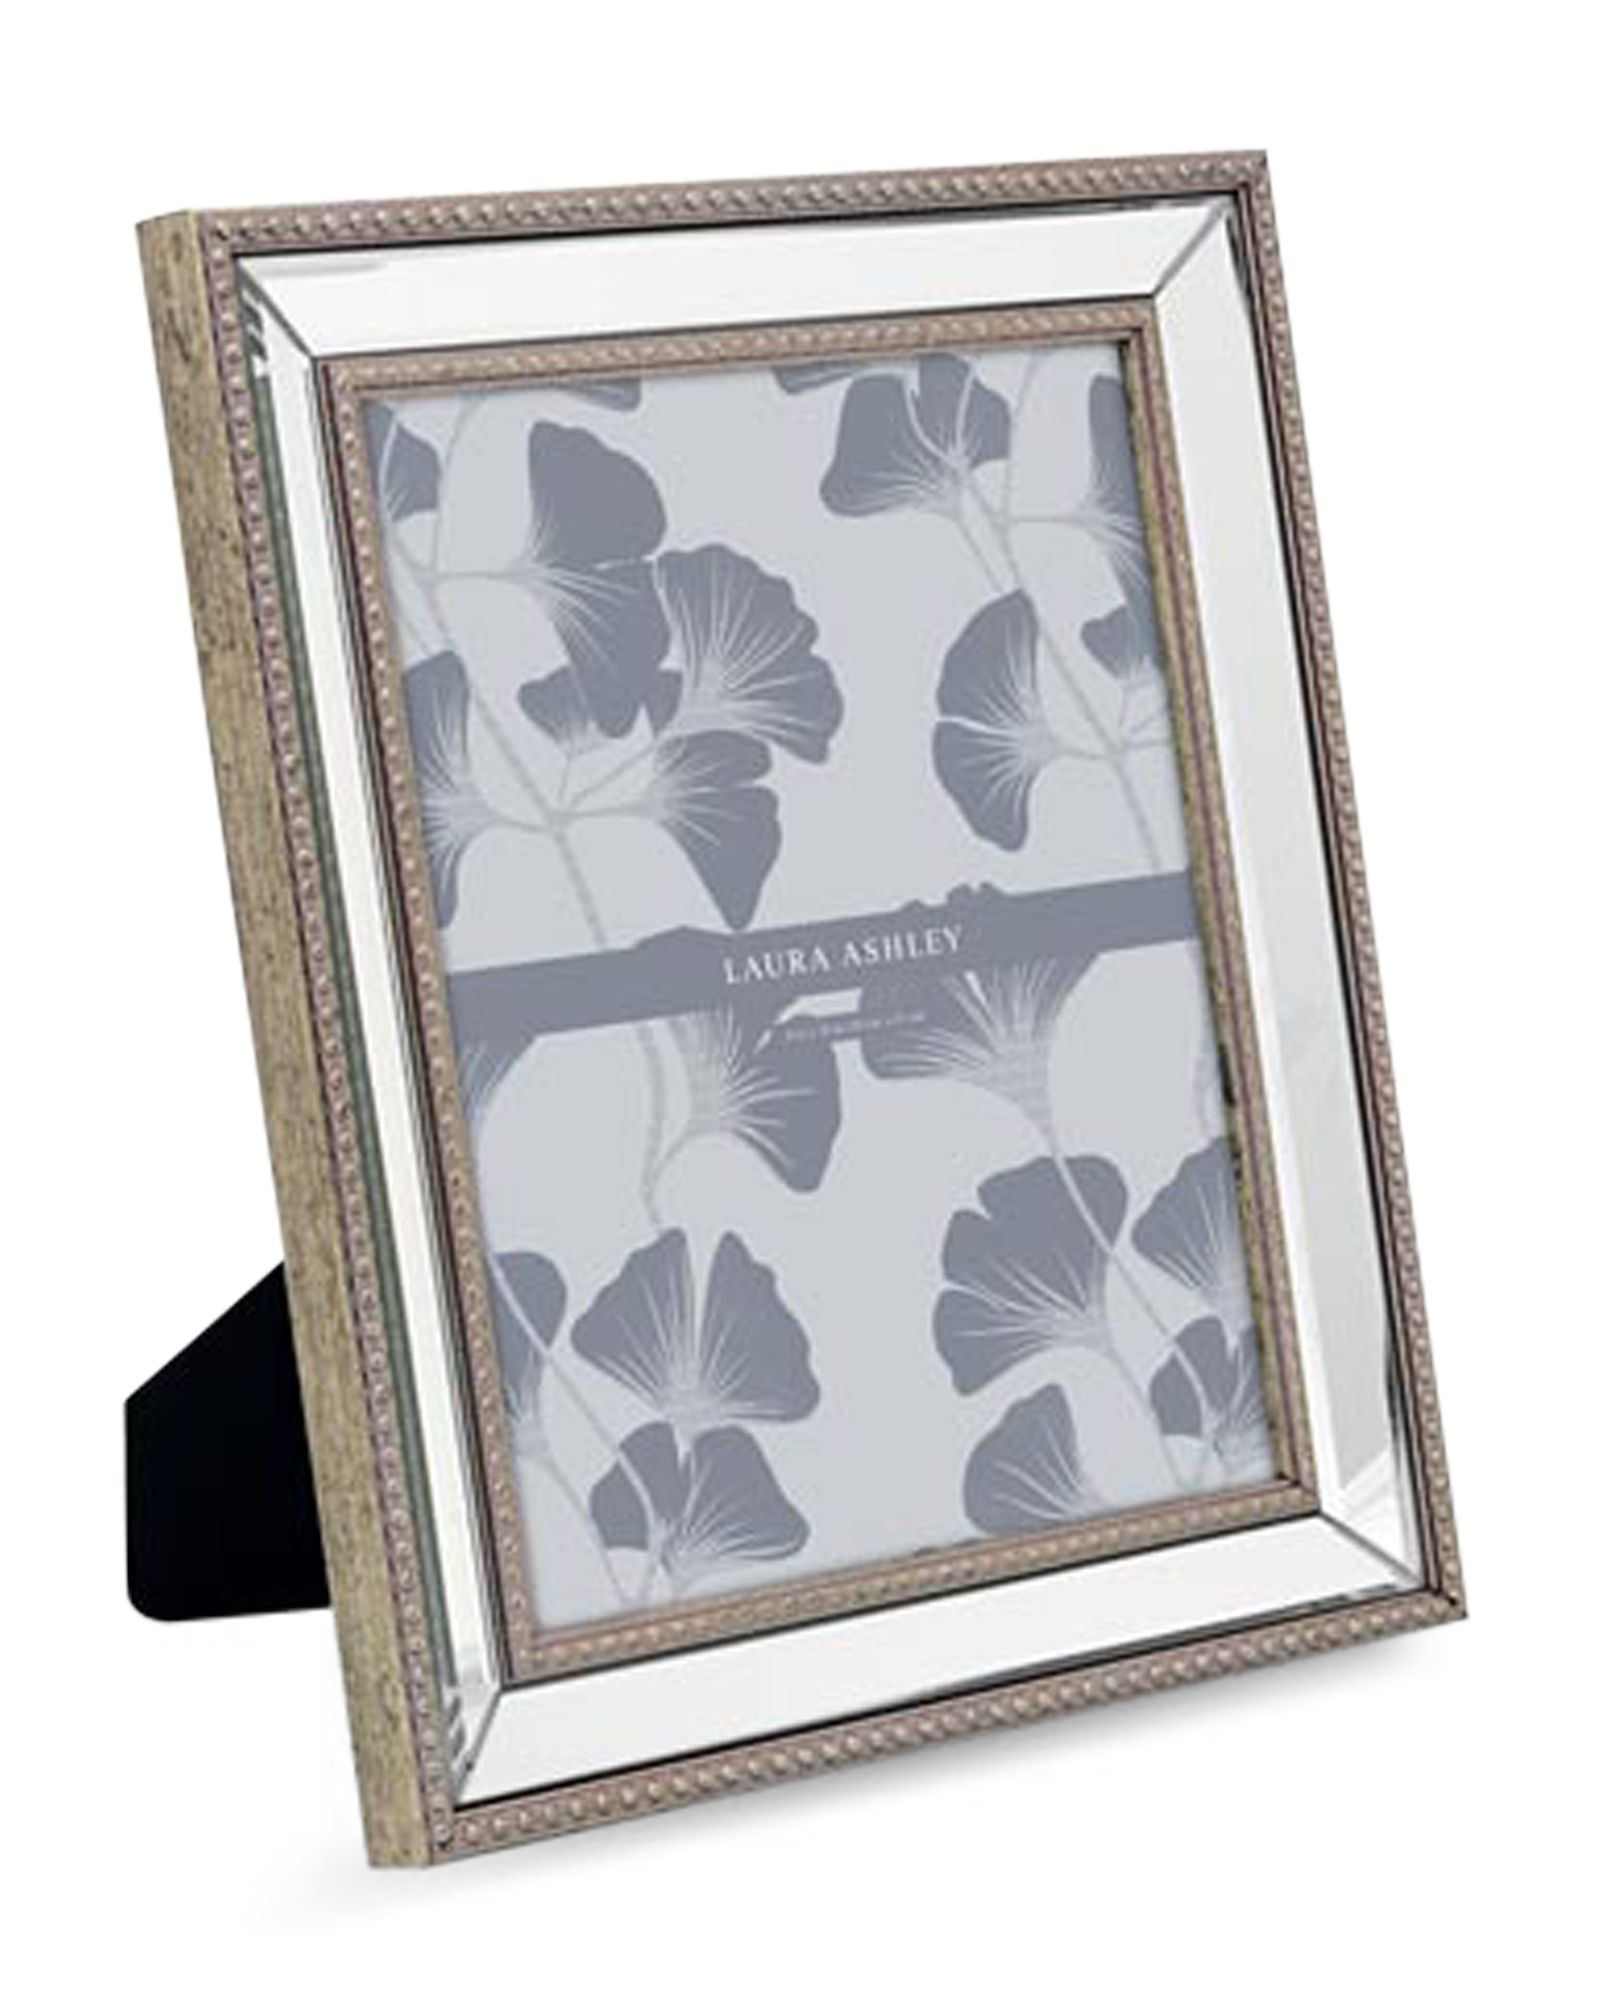 Laura Ashley 8 X 10 Bead Mirror Picture Frame